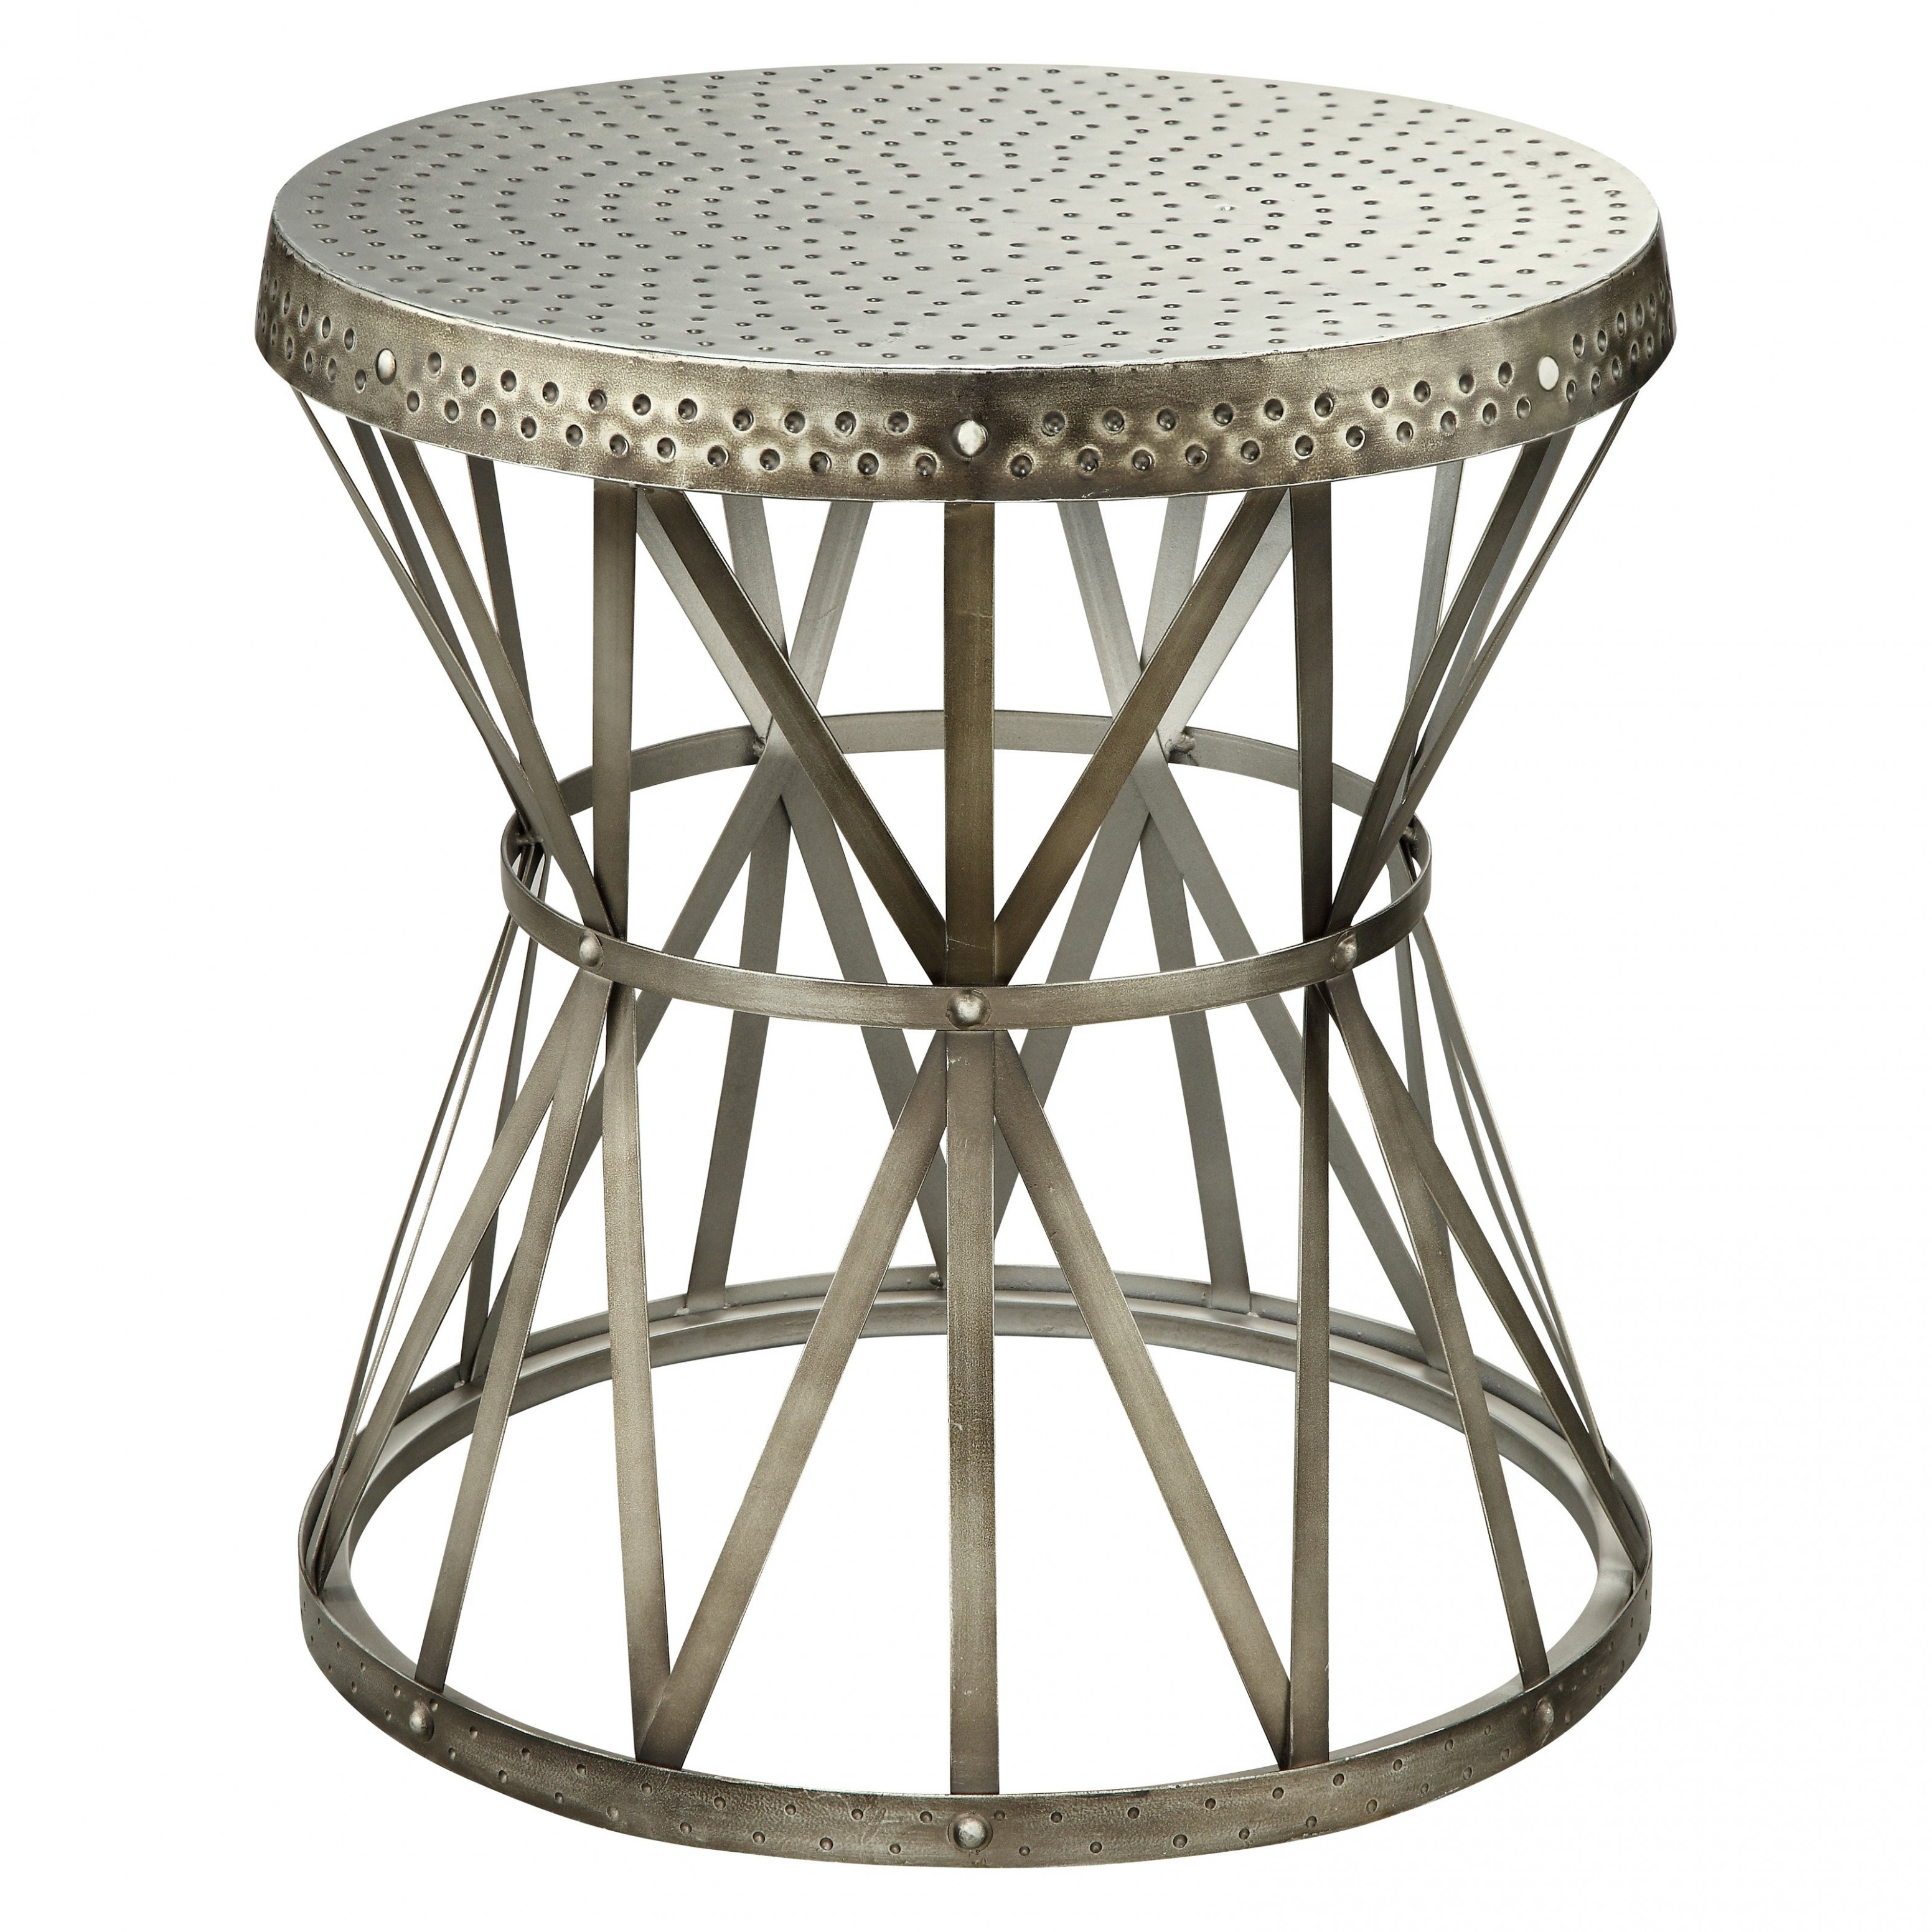 awesome metal drum accent table gold hammered coast round end tables red decor ikea plastic storage boxes with wheels coffee formal dining chairs uttermost fruit cocktail drink